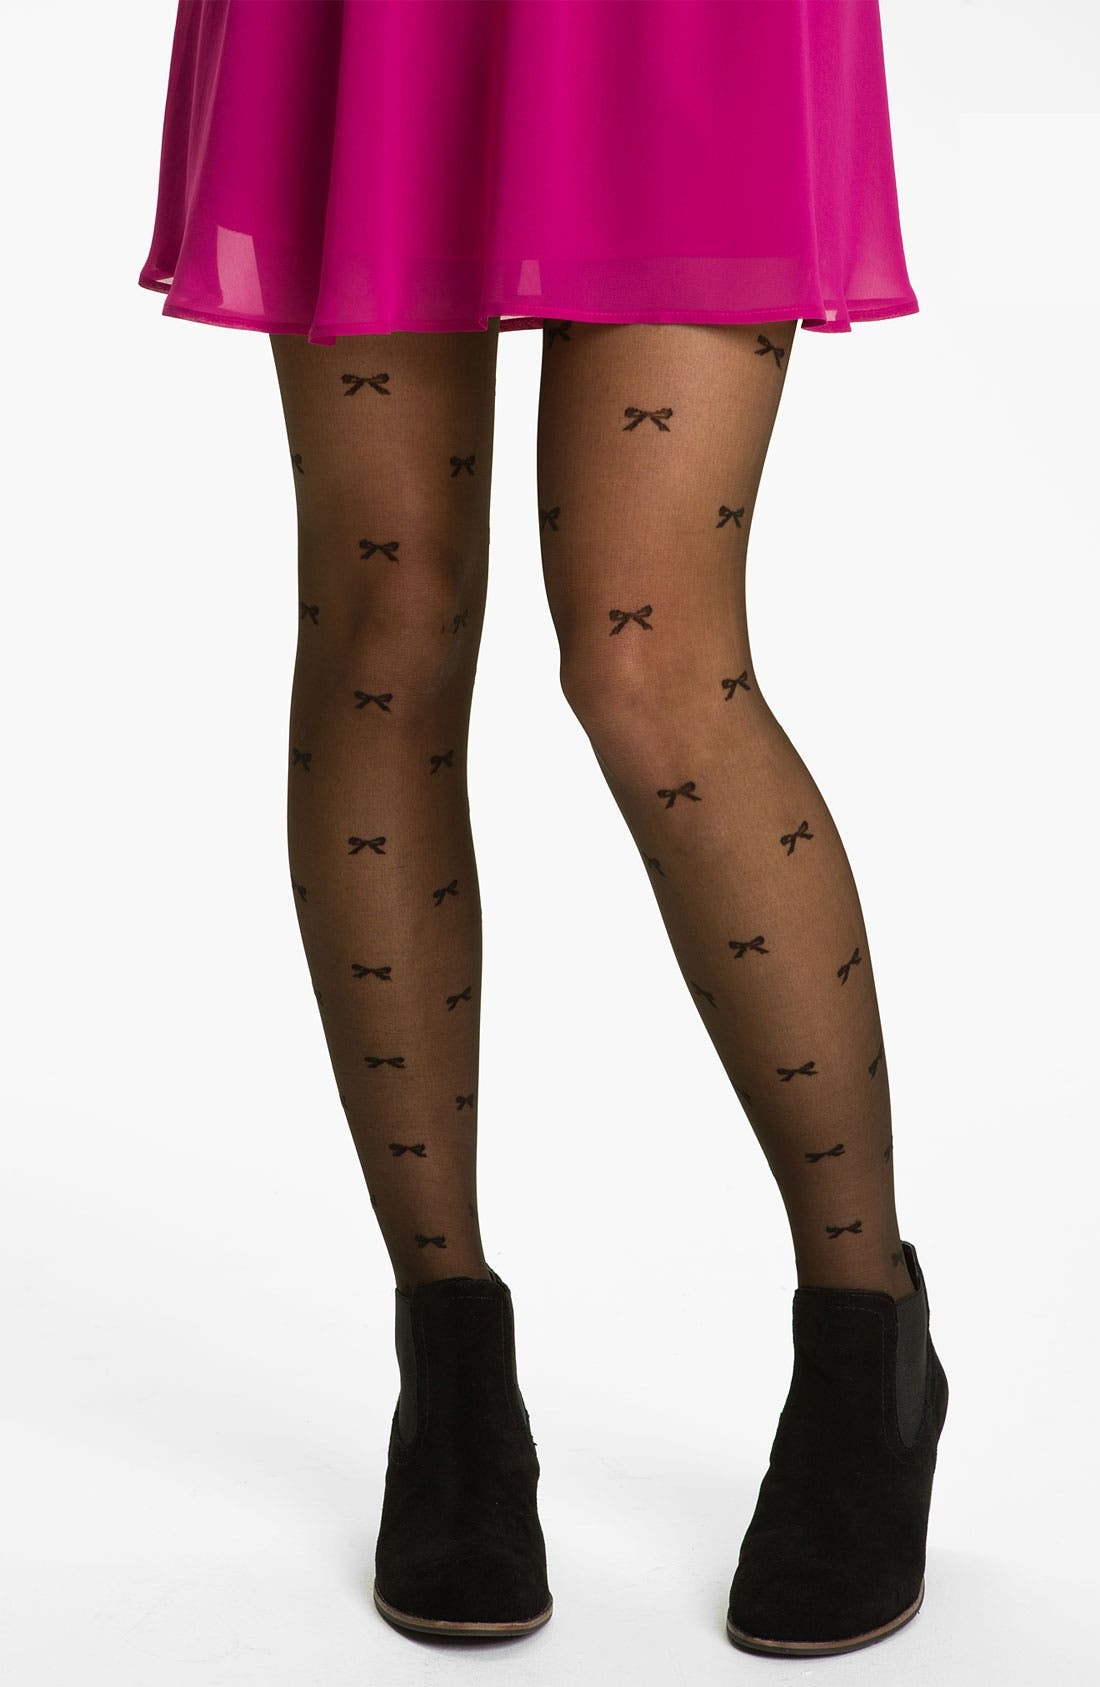 Main Image - Frenchi® Bow Print Sheer Tights (Juniors)